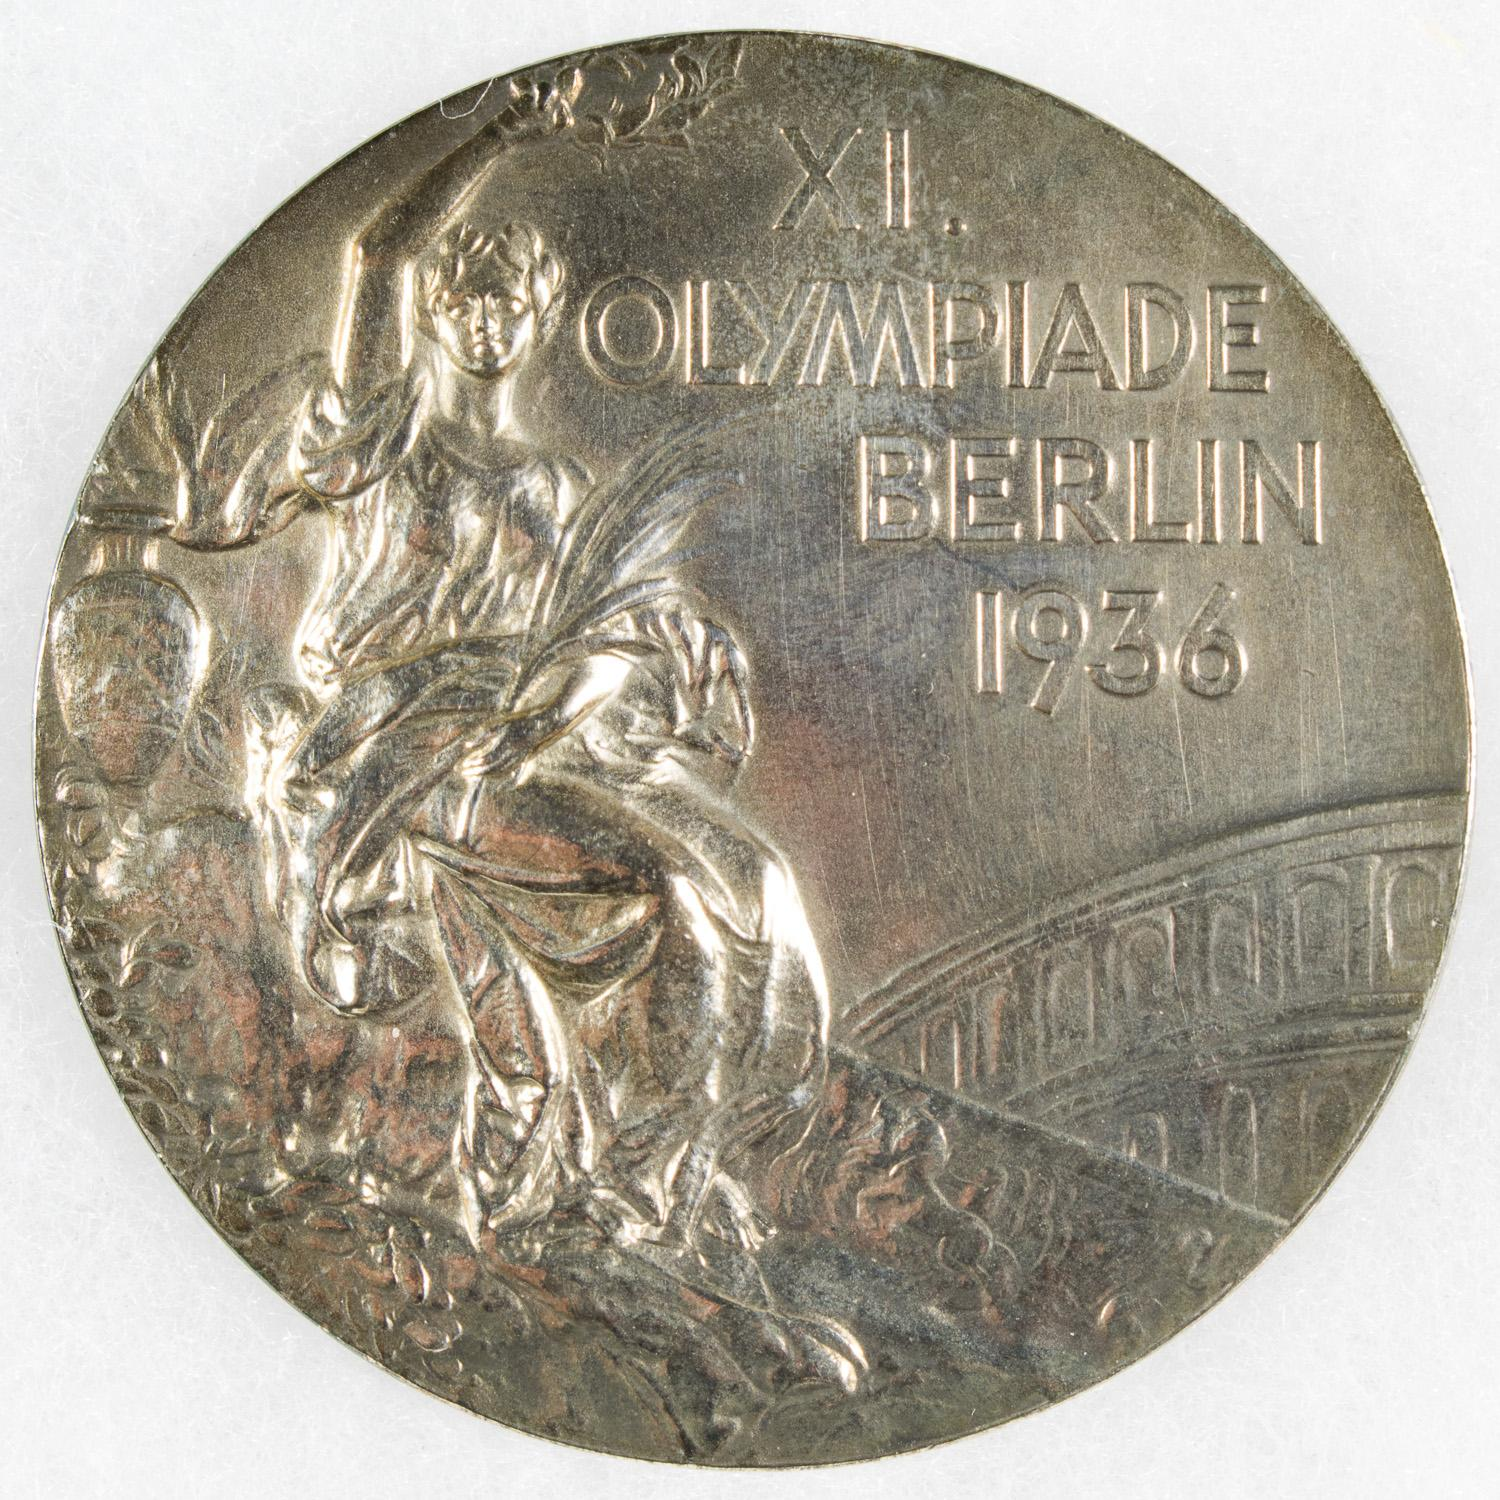 ORIGINAL SILVER MEDAL FROM THE 1936 BERLIN OLYMPICS